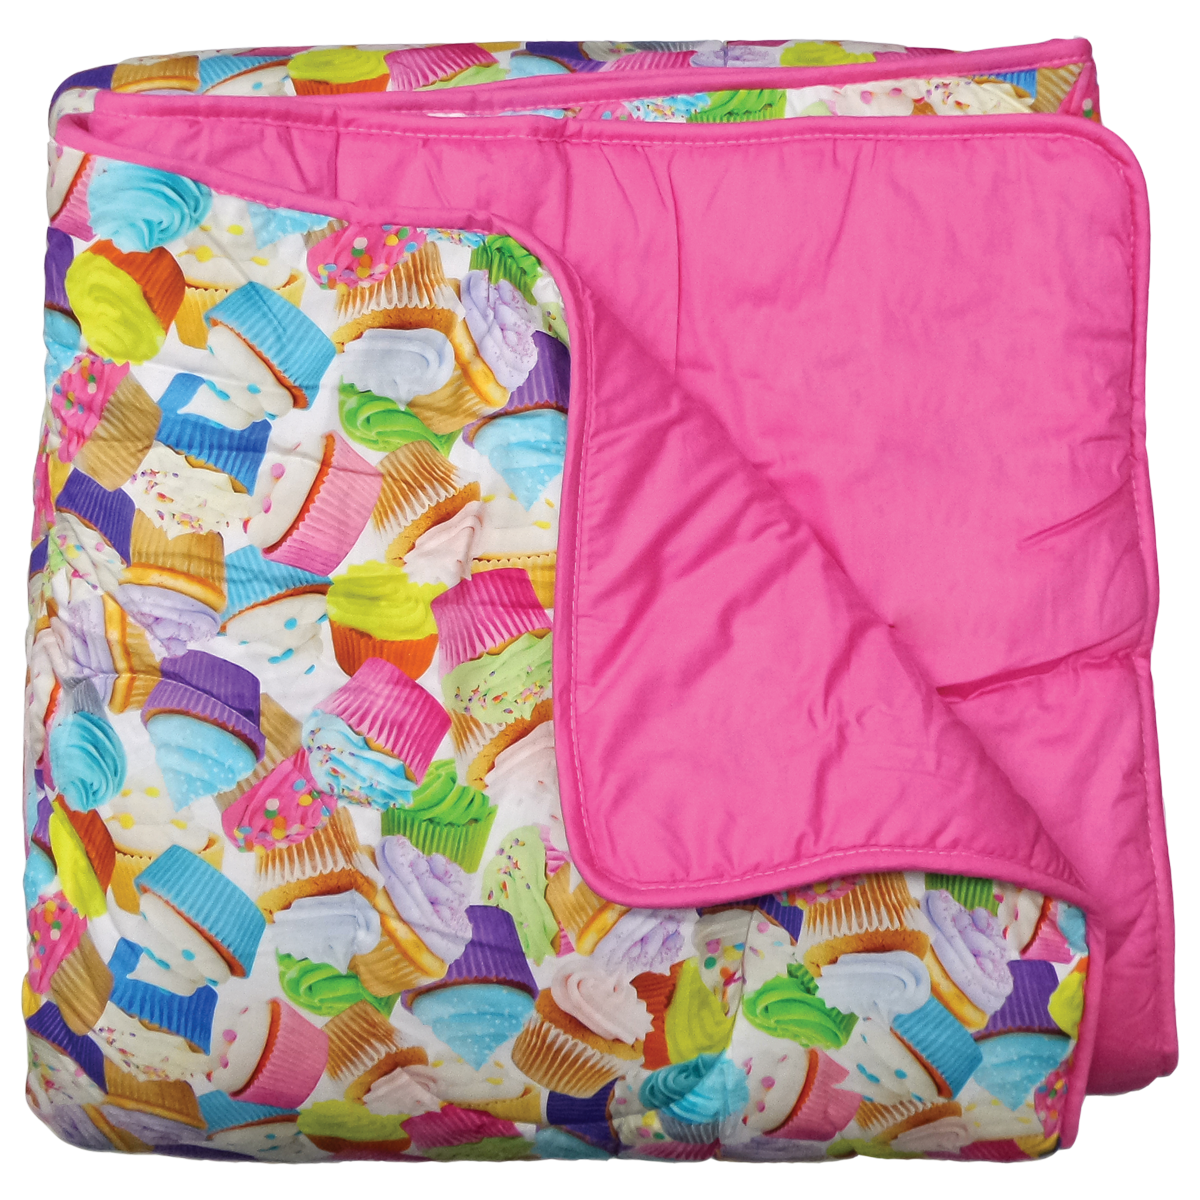 cupcakes xl twin comforter  iscream - picture of cupcakes xl twin comforter picture of cupcakes xl twin comforter